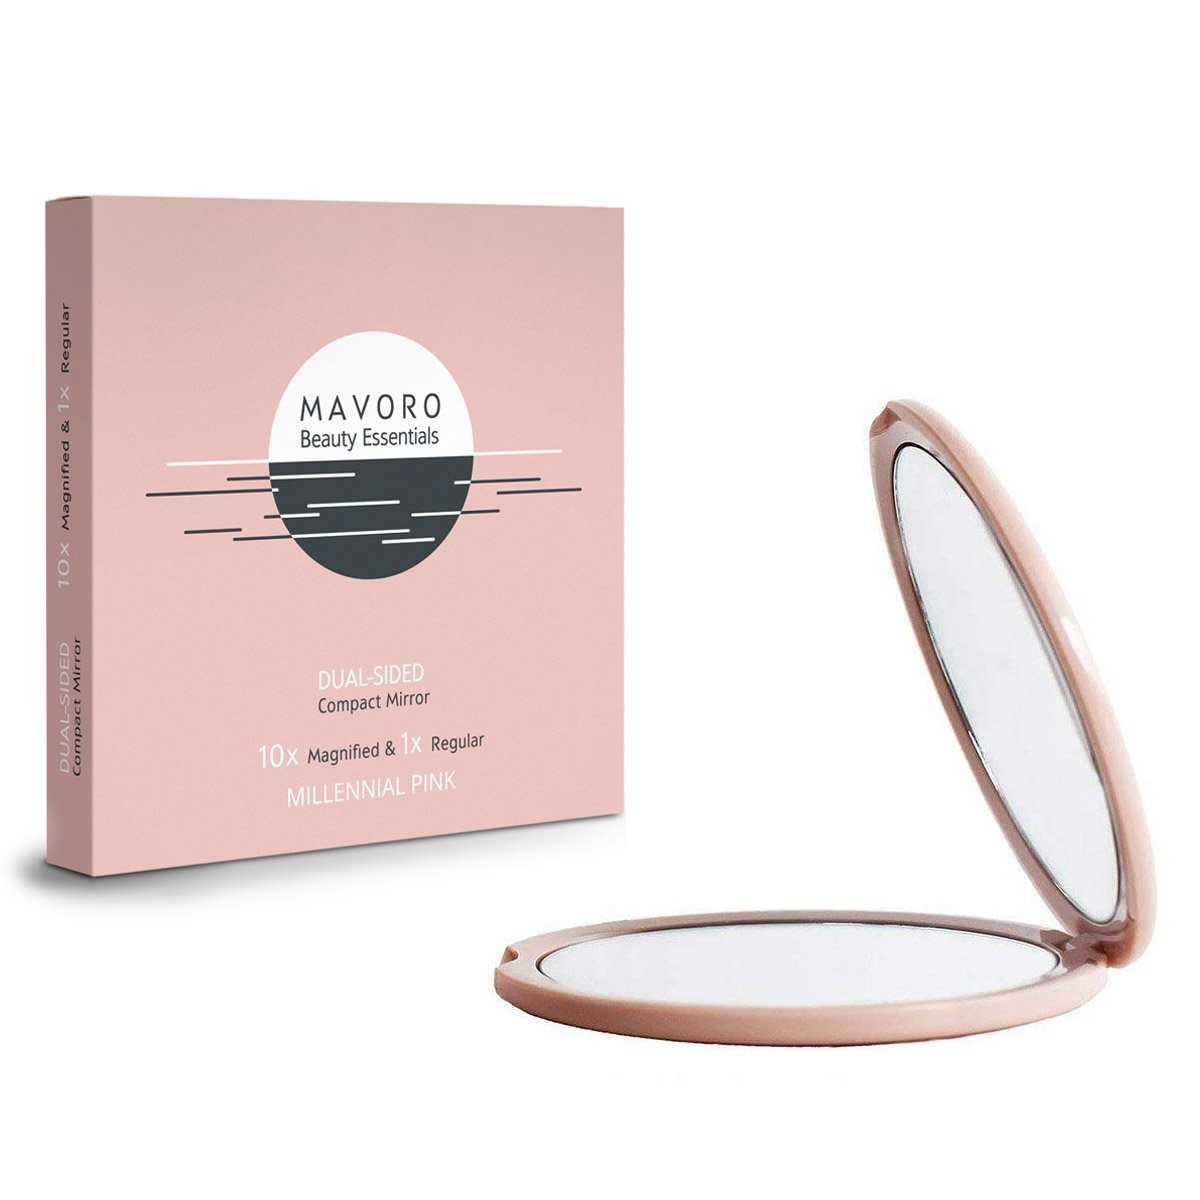 Magnifying Compact Mirror 10X Magnification - 1X Mirror 2-sided, 4 inch Handheld Magnified MakeUp Mirror for Purses And Travel, Mavoro Beauty Essentials (Millennial Pink)